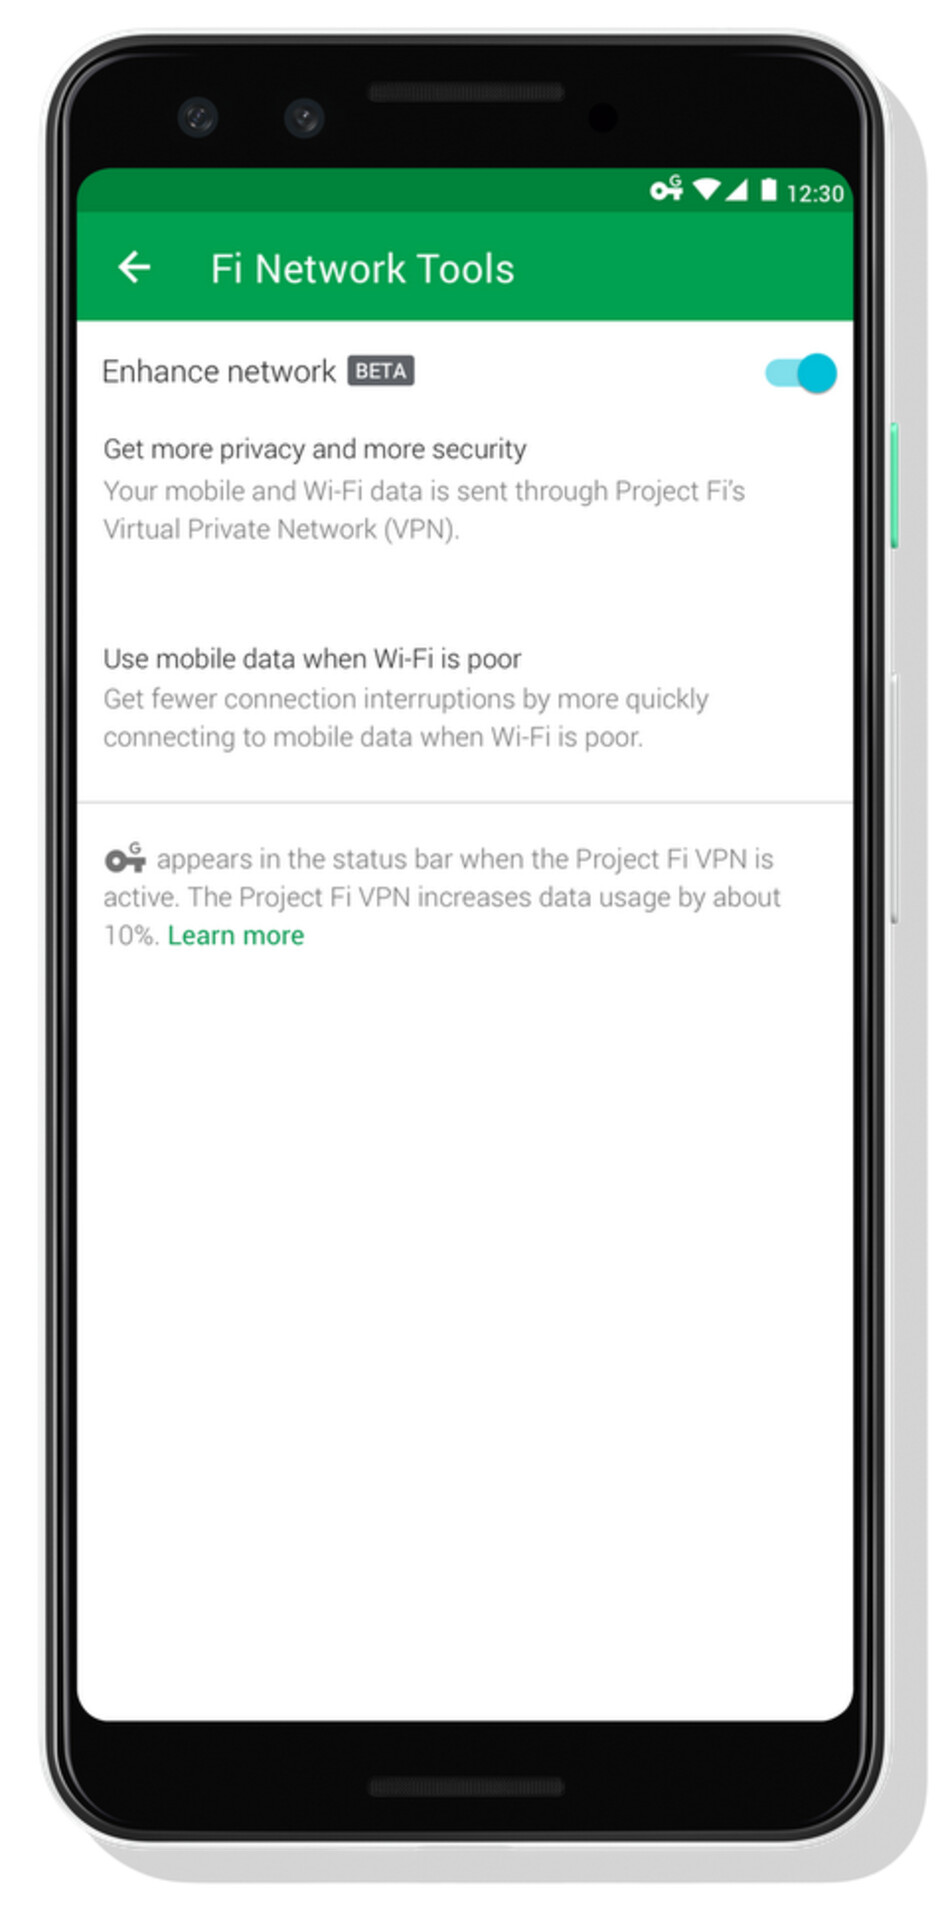 Google promises enhanced network security, faster connections on Project Fi